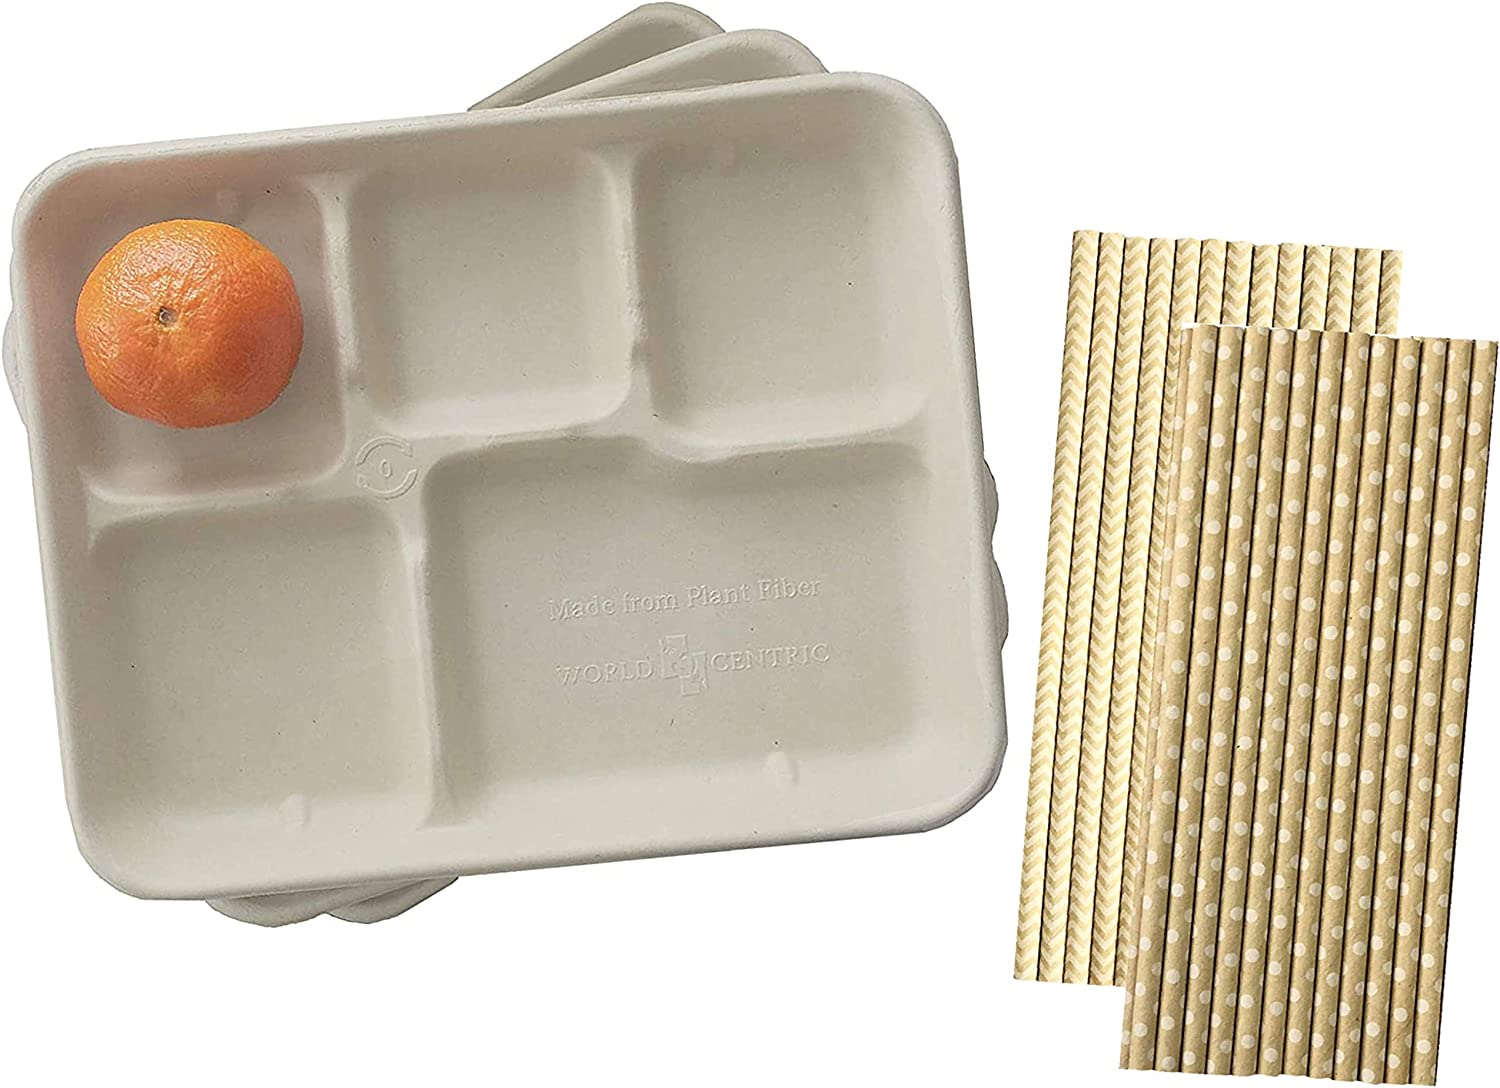 Compostable Paper 5 Compartment School Lunch Trays - Retro Style Kraft Brown Paper and Paper Drinking Straws - 24 Trays and 50 Straws